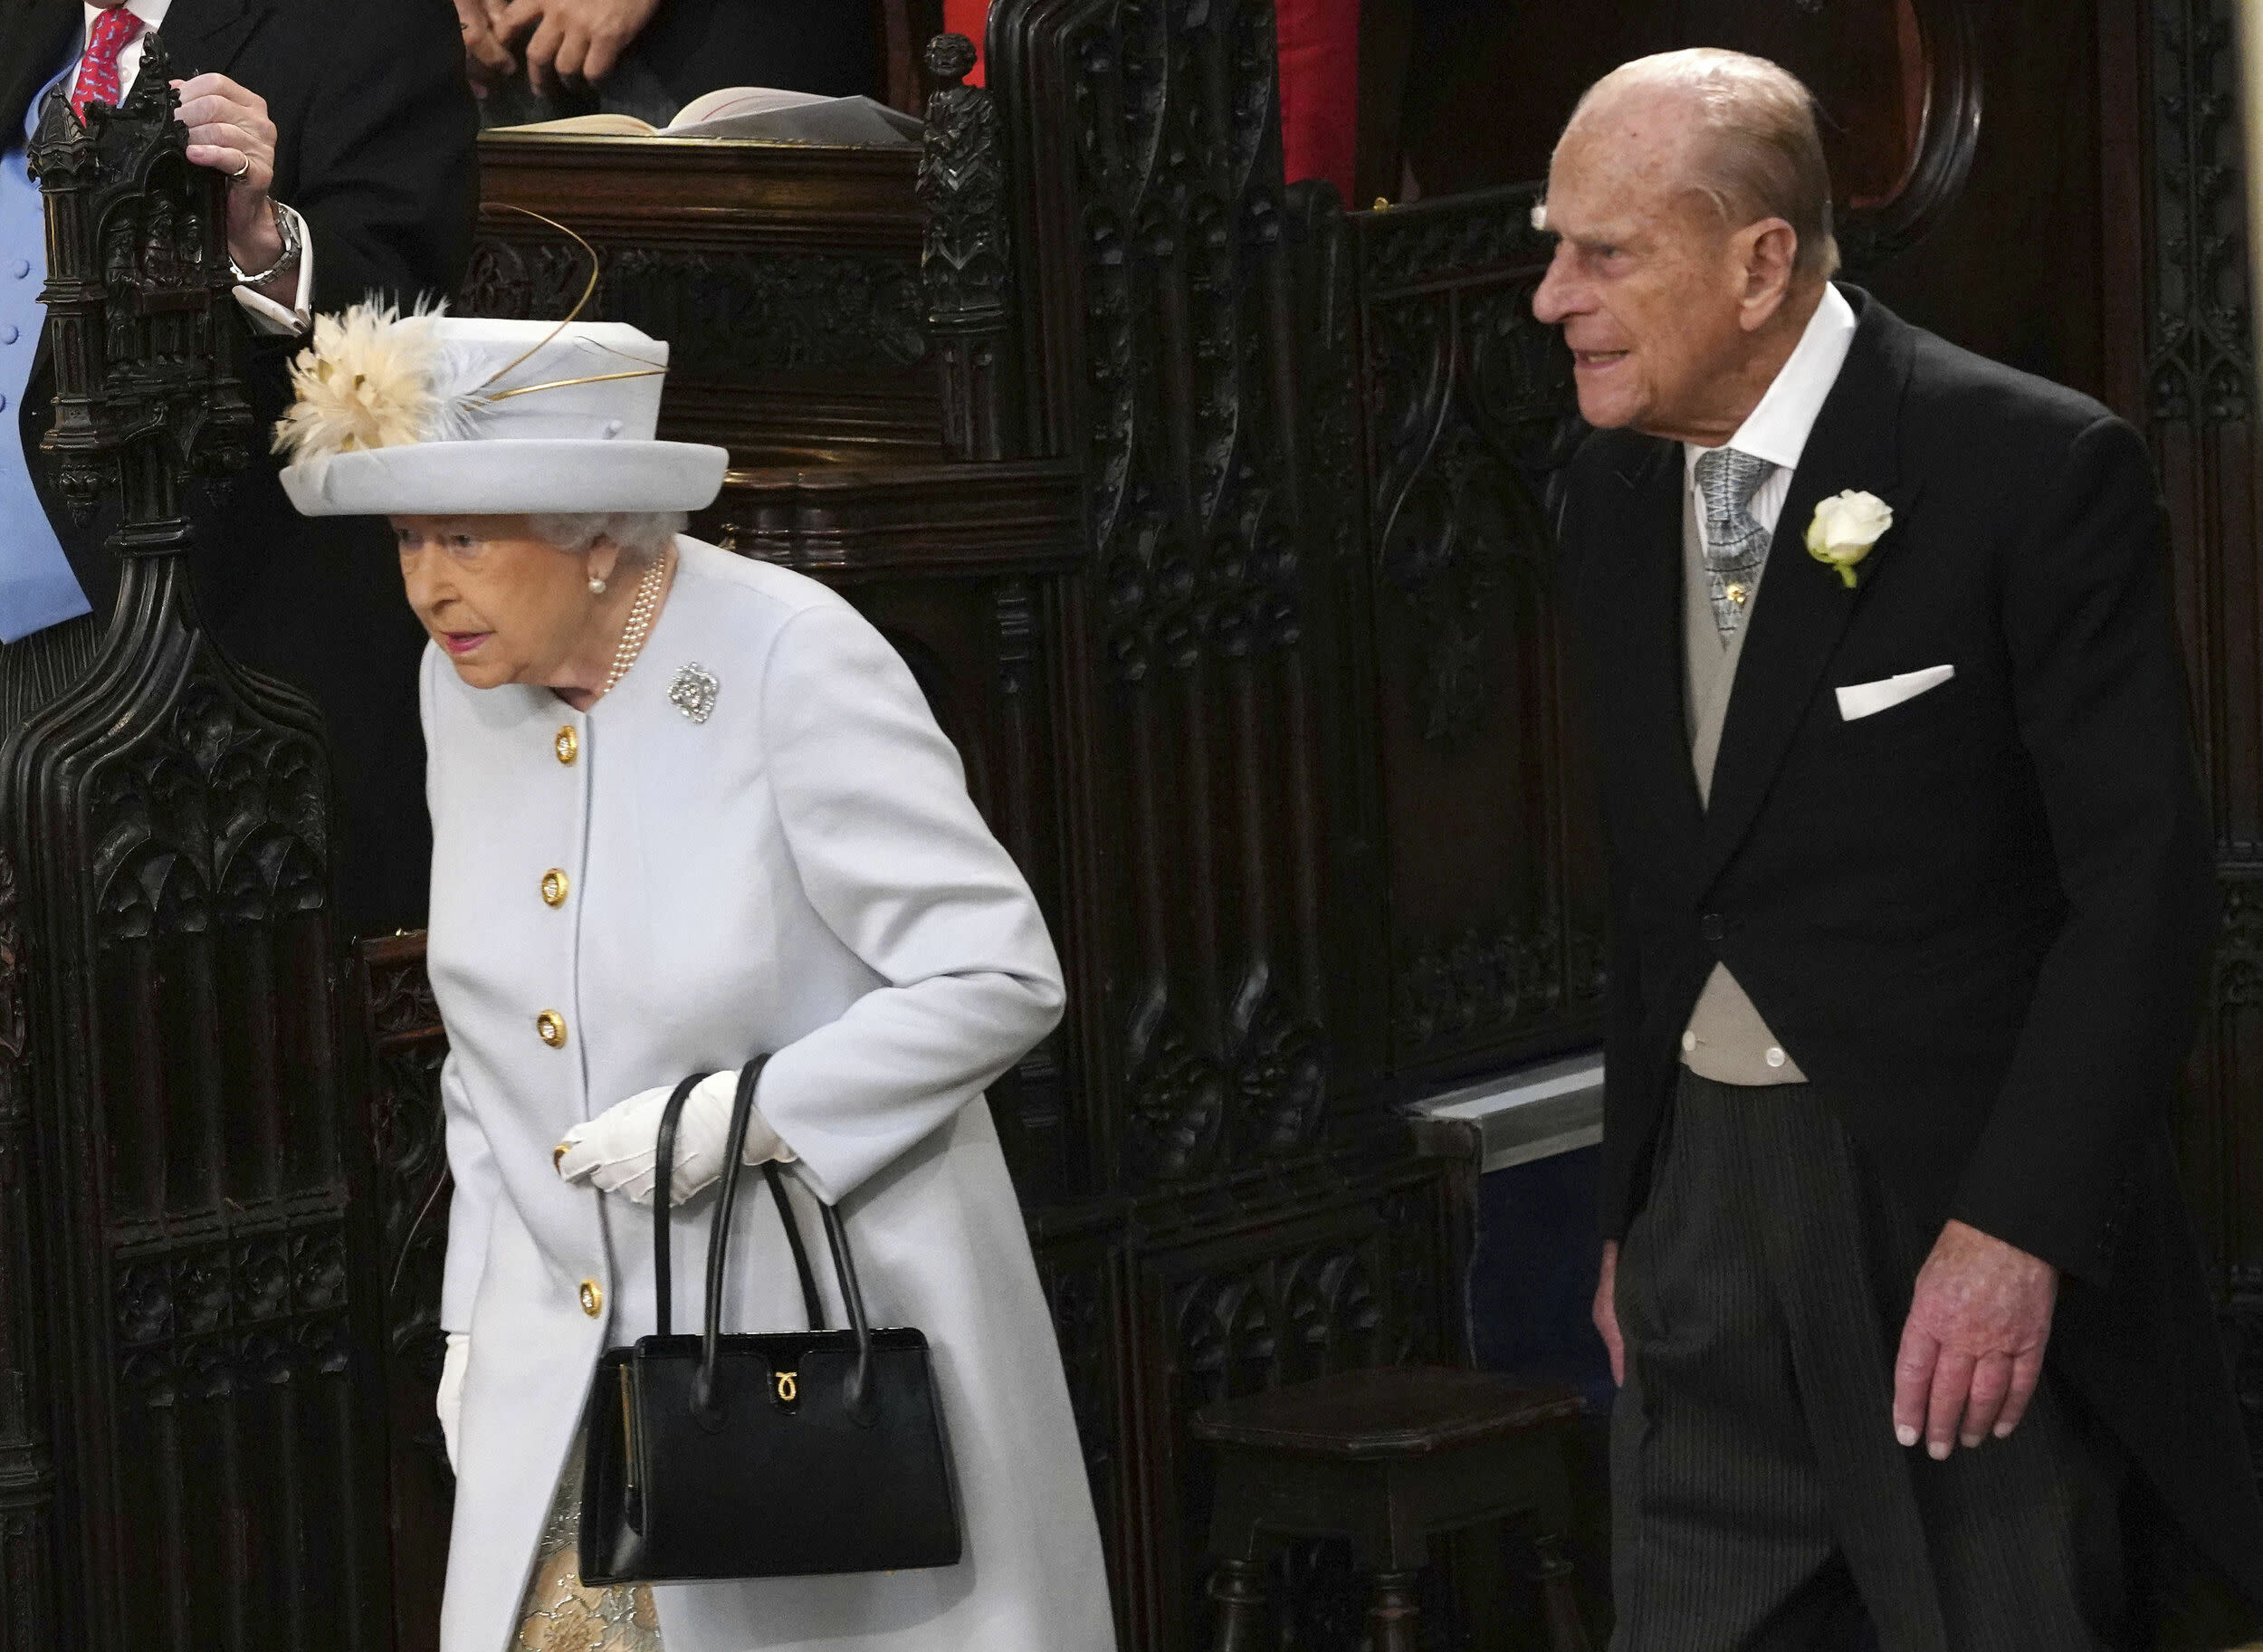 Queen Elizabeth II and Prince Philip arrive for the wedding of Princess Eugenie of York and Jack Brooksbank in St George's Chapel, Windsor Castle, near London, England, Friday Oct. 12, 2018. (Jonathan Brady, Pool via AP)